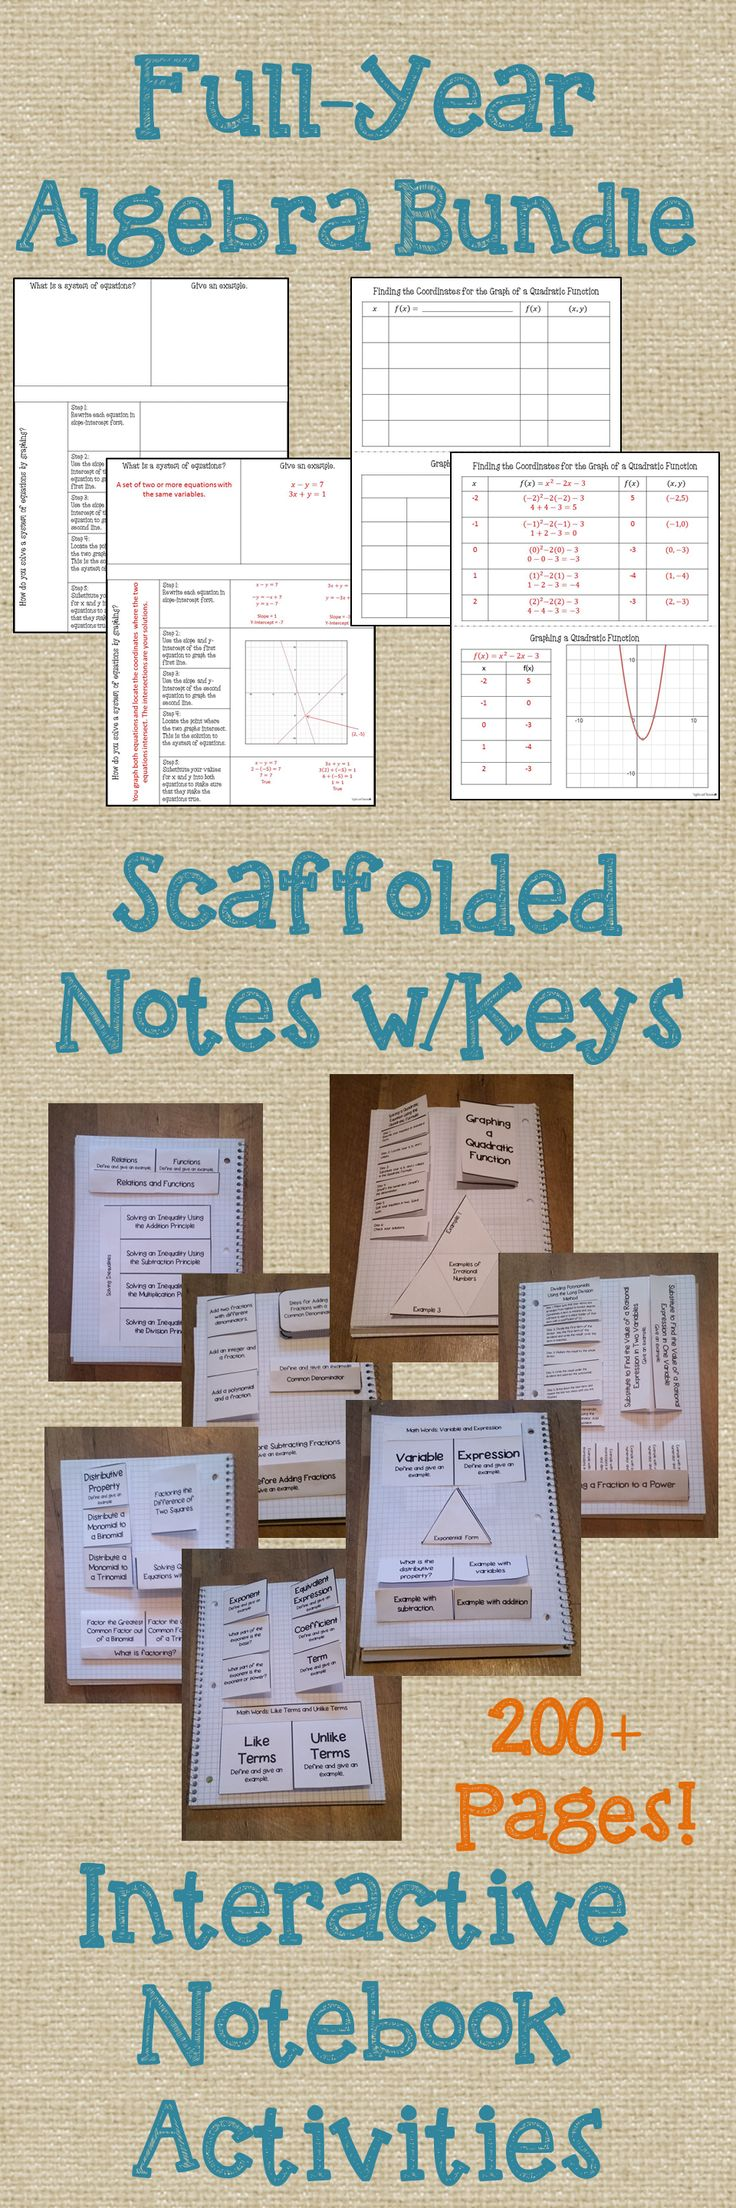 Full-Year - INB & Scaffolded Notes w/Answer Keys. Topics:  Integers; Variables, Terms, & Expressions; Introduction to Algebraic Equations; Introduction to Polynomials; Equations, Inequalities, & Functions; Adding & Subtracting Rational Expressions; Multiplying & Dividing Rational Expressions; Graphing Lines & Linear Inequalities; Systems of Equations; Square Roots & Quadratic Functions.